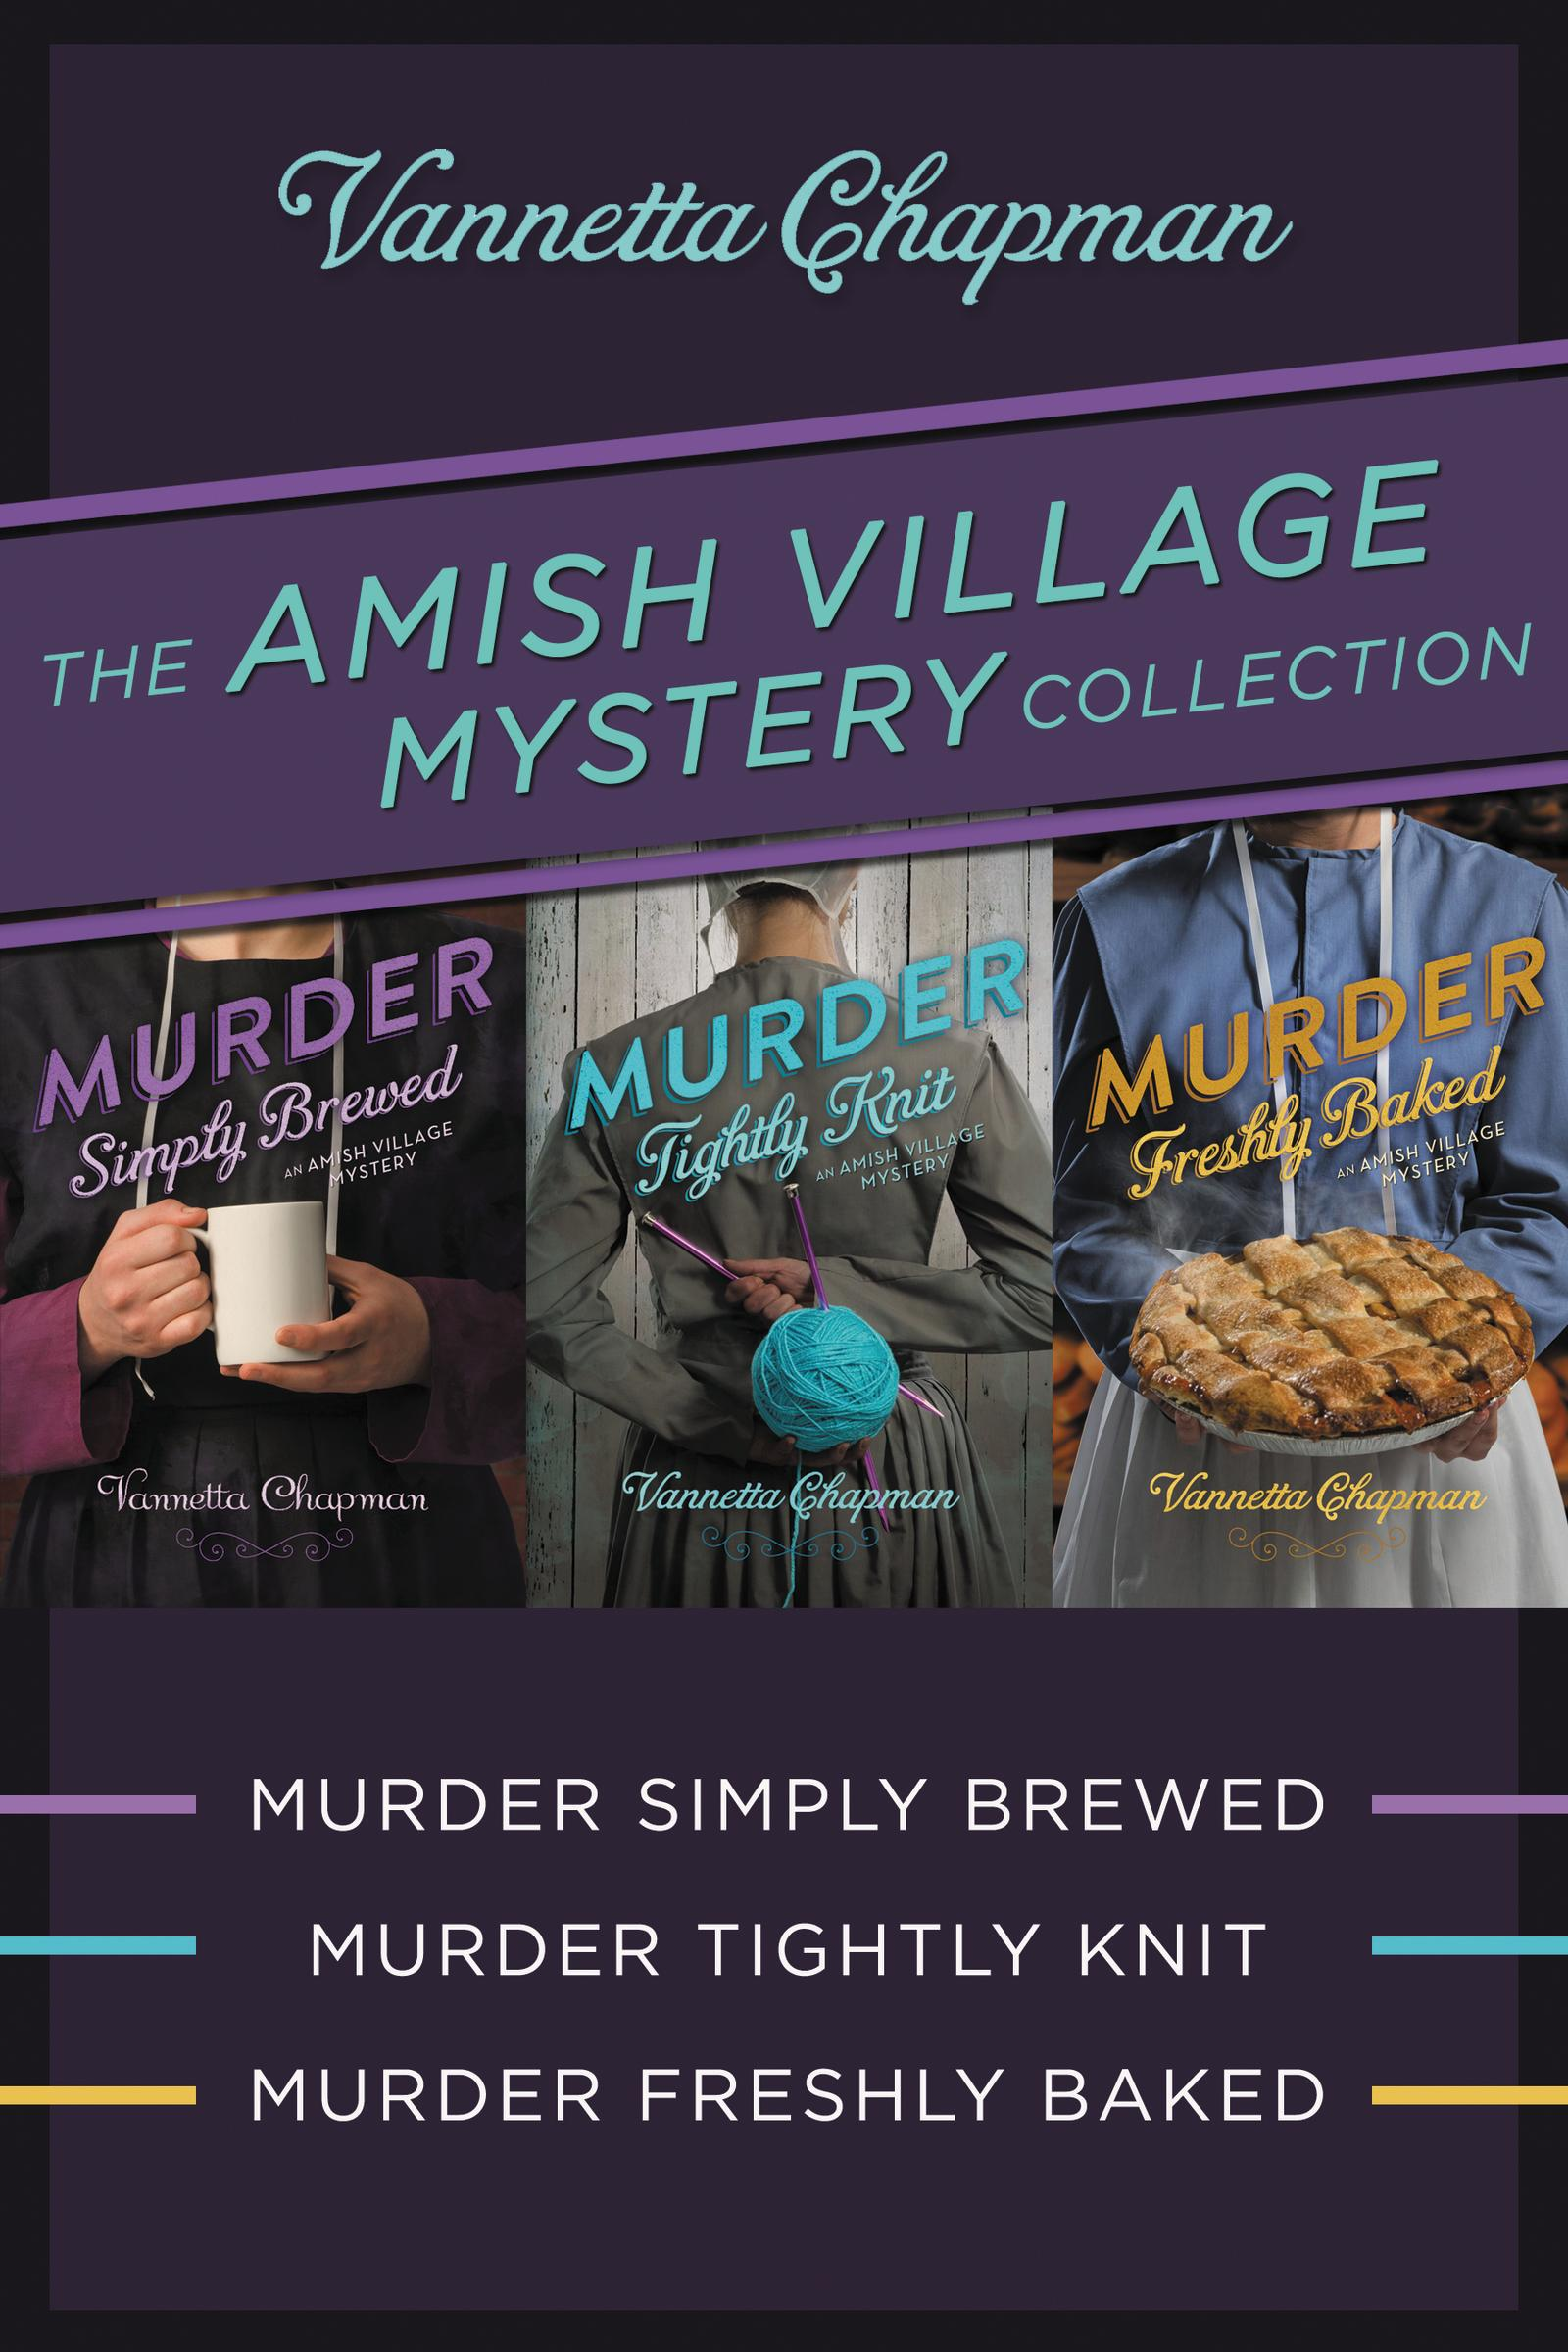 The Amish Village Mystery Collection